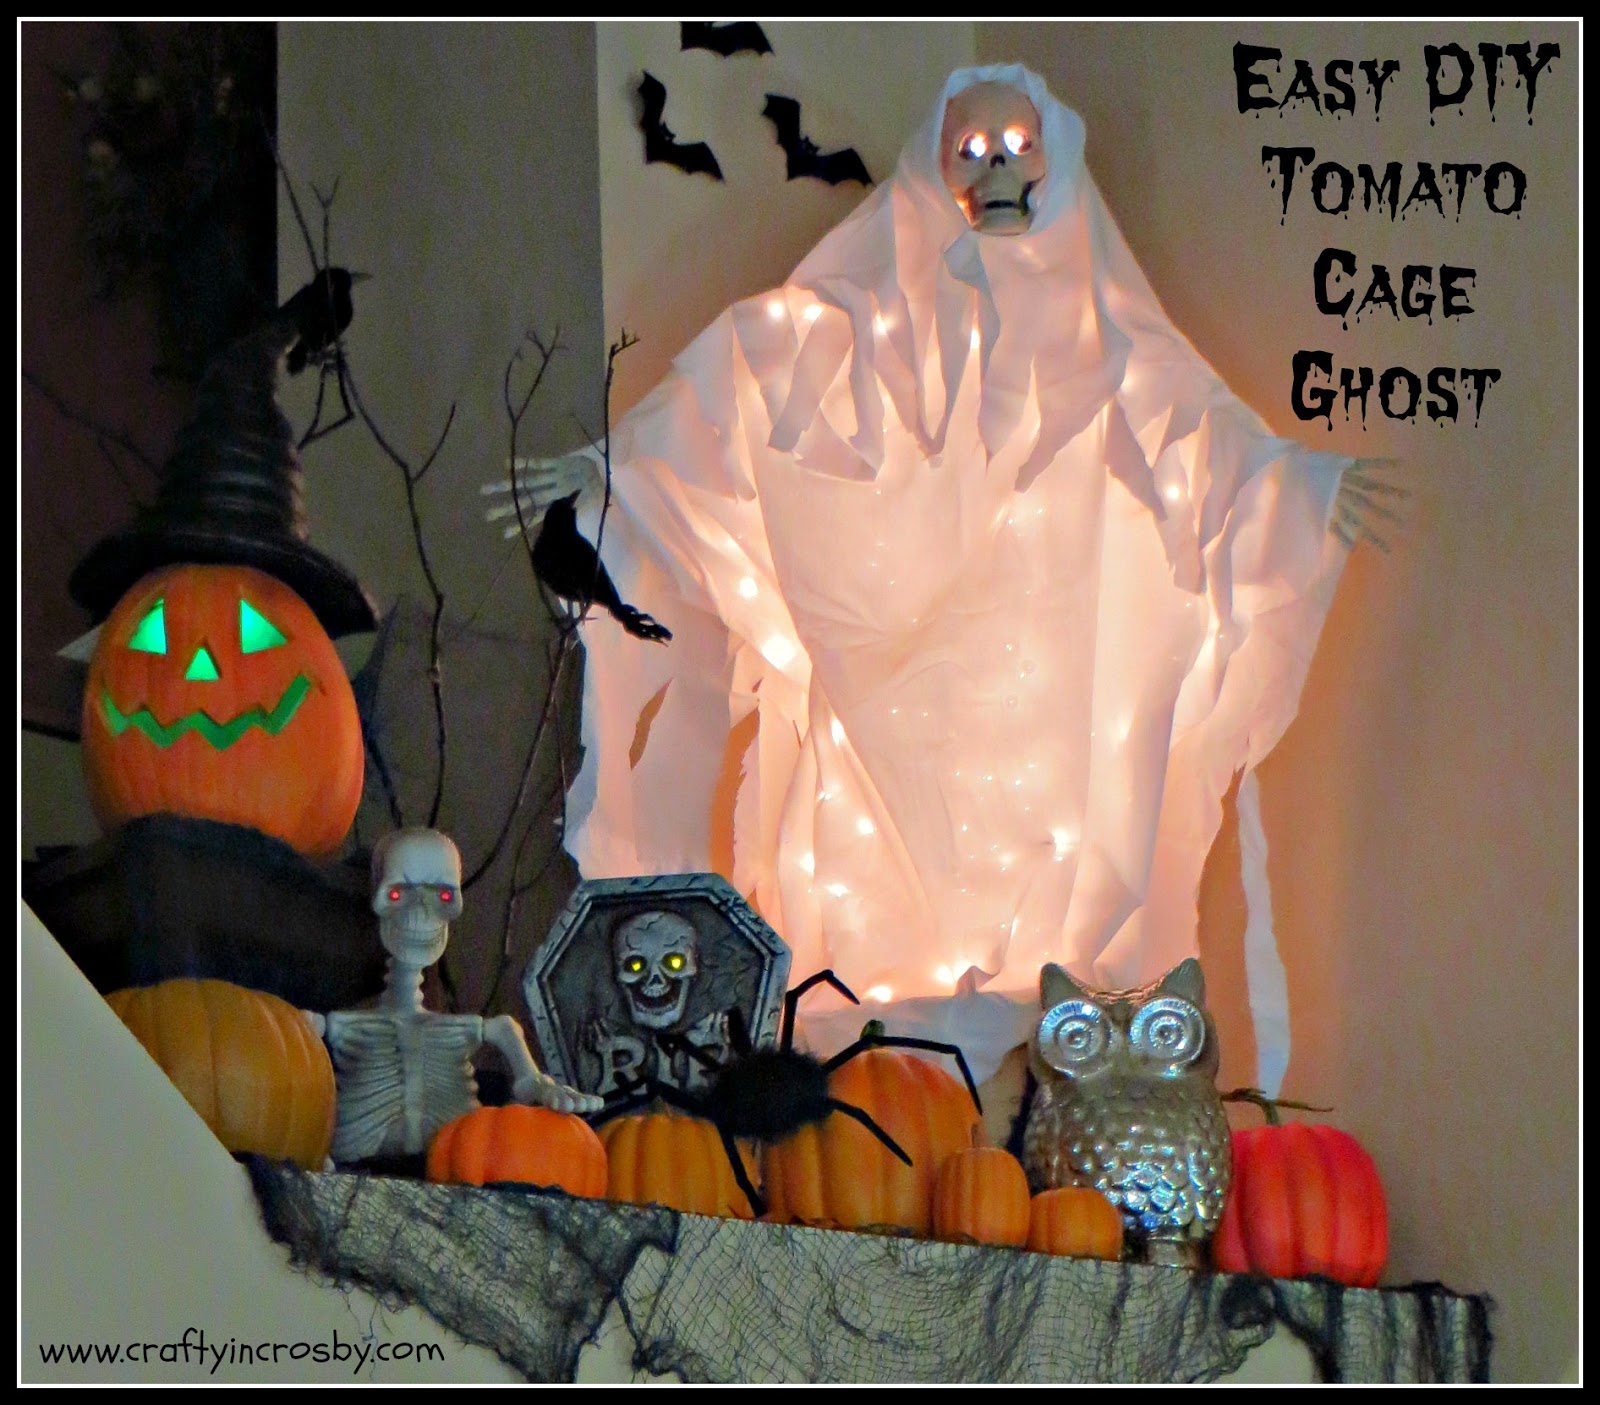 Crafty In Crosby: Easy DIY Tomato Cage Ghost